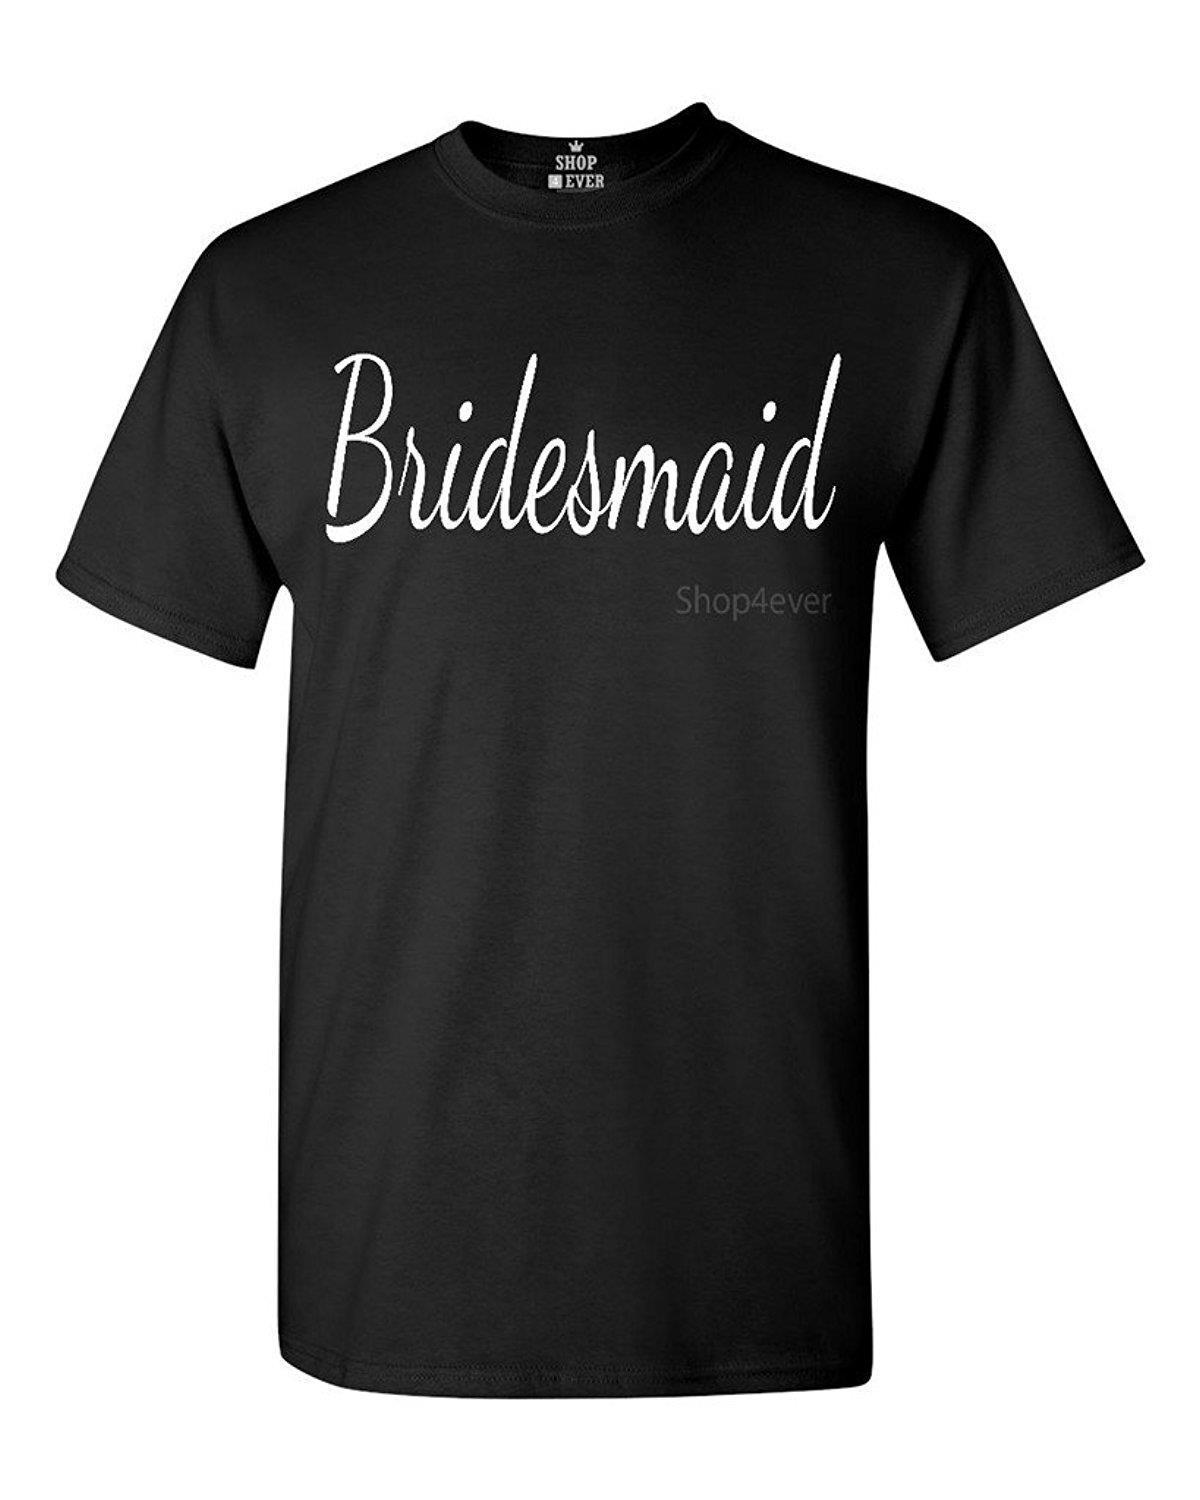 Wedding Bridesmaid T Shirts popular bridesmaids t shirts buy cheap lots bridesmaid shirt wedding design mens high quality 100 cotton short sleeve o neck tops tee hot sale